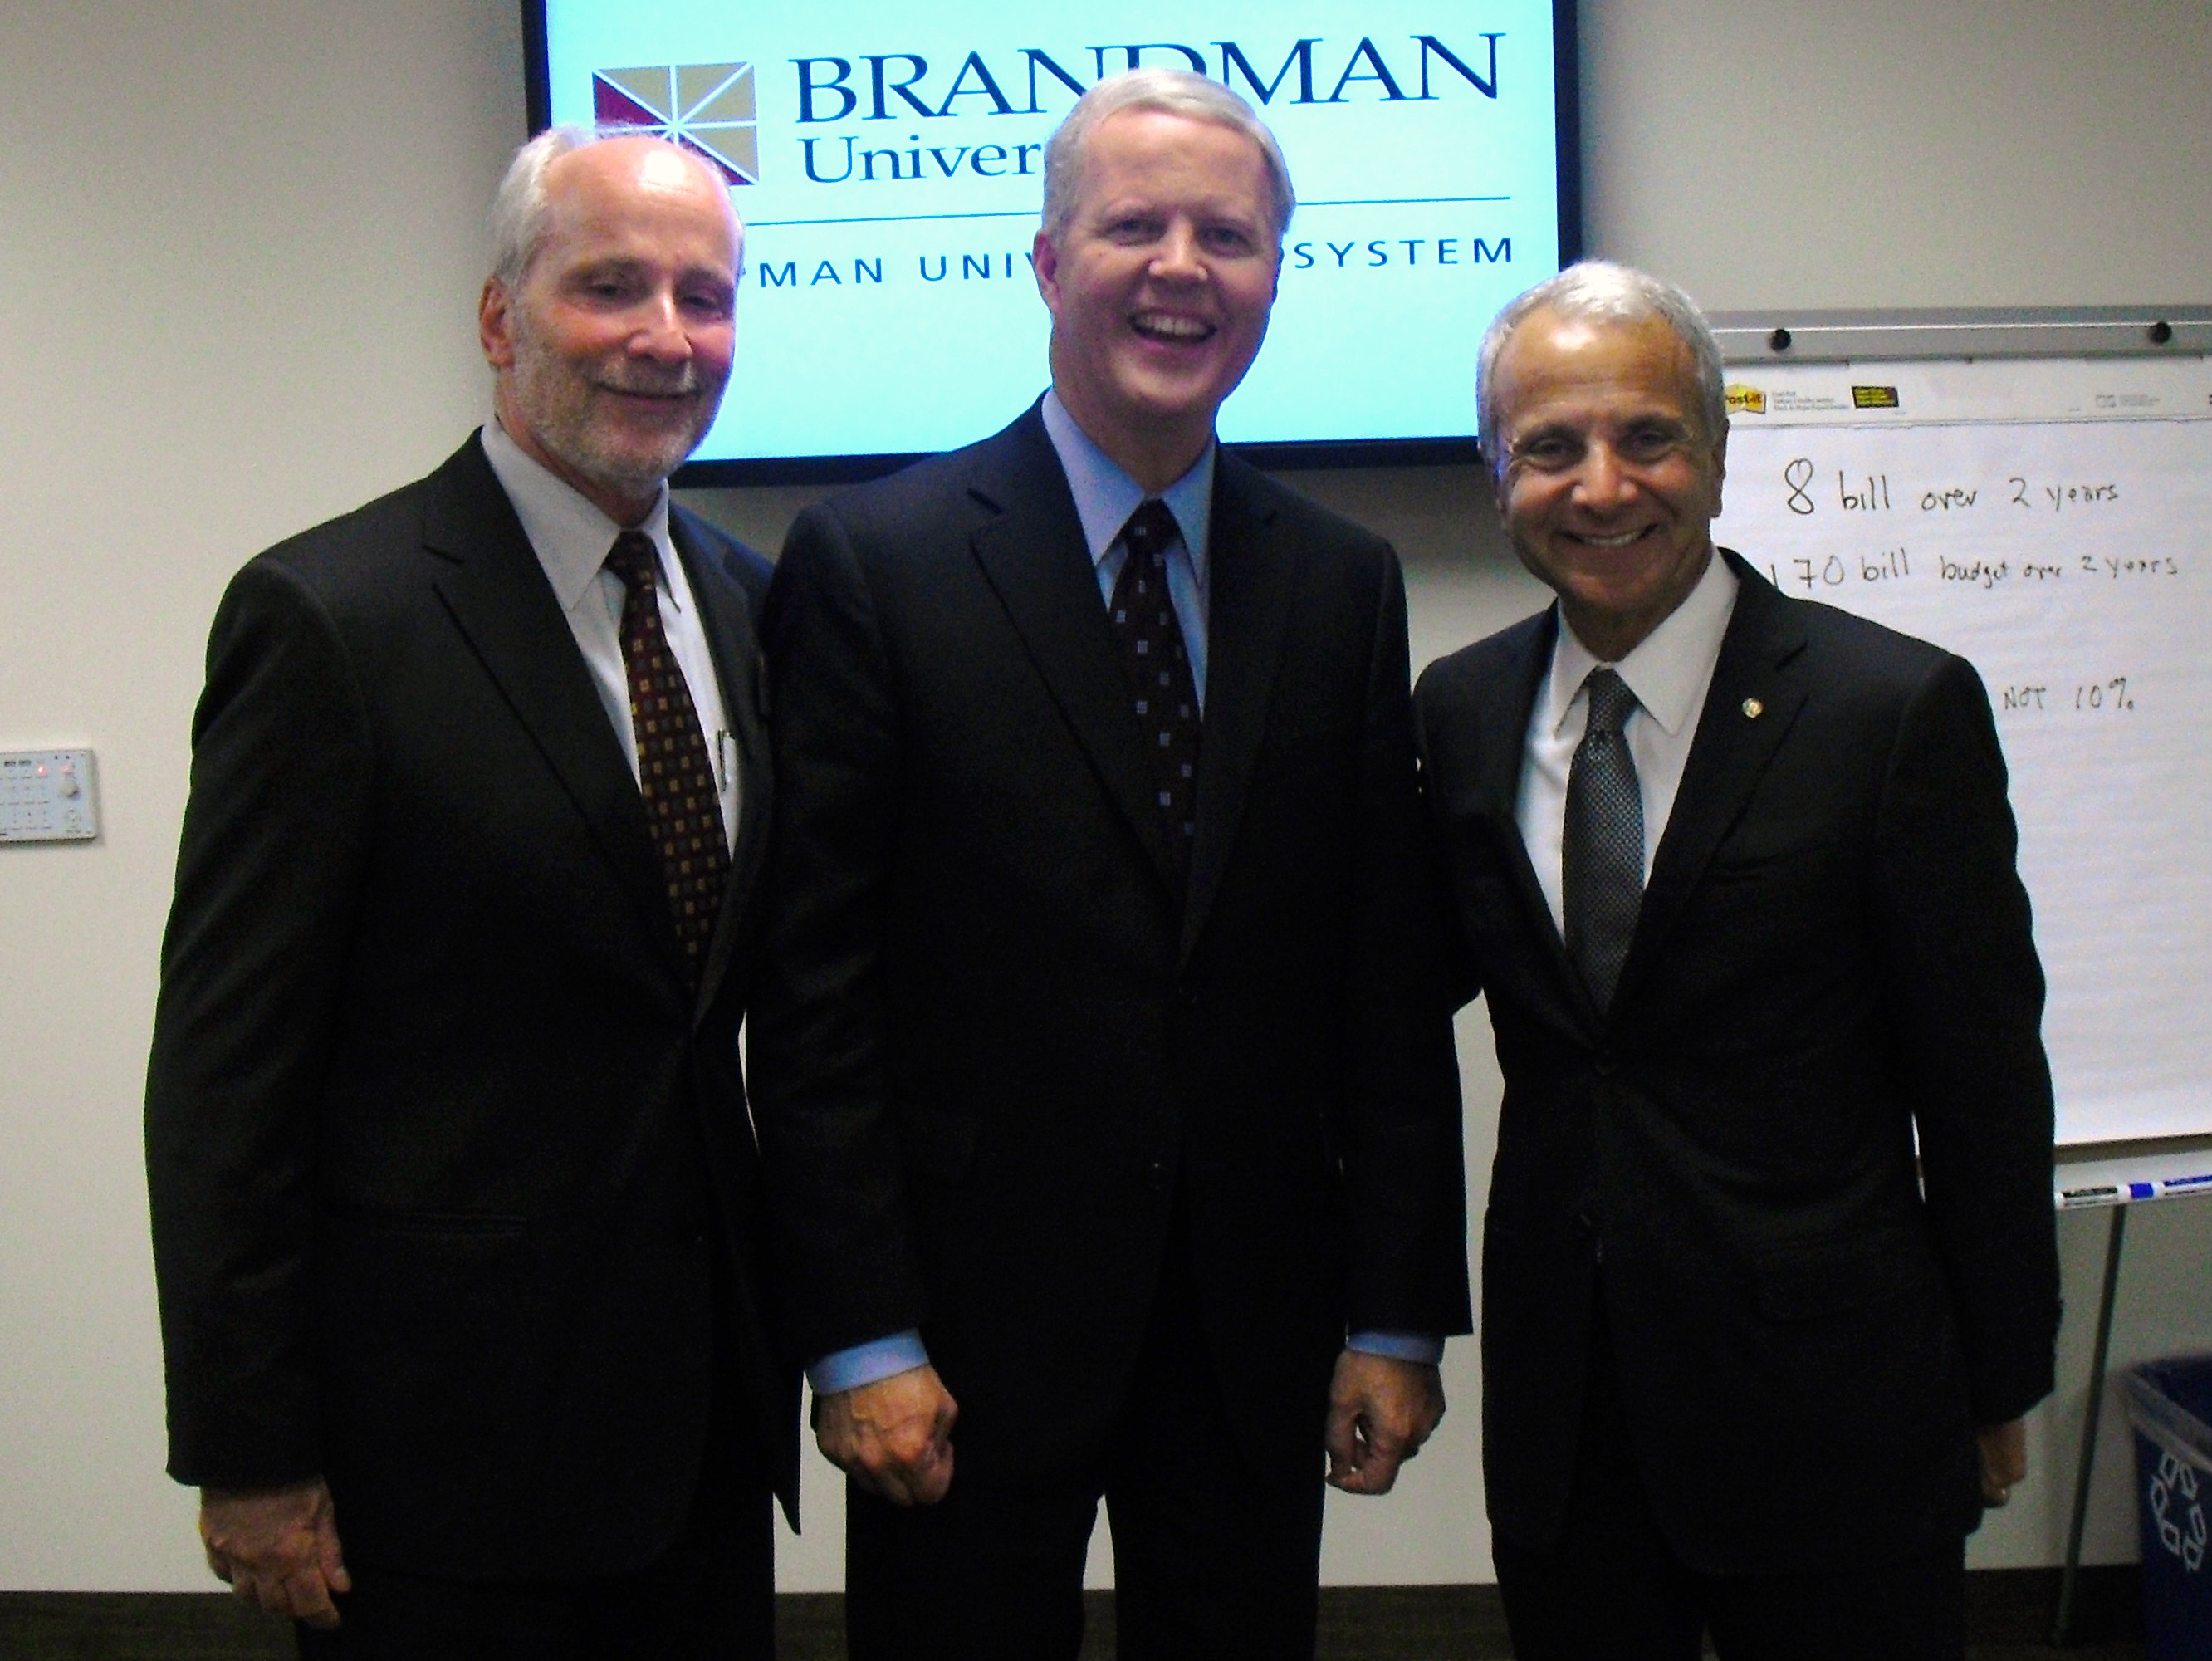 Tom Campbell was welcomed with open arms by Chapman University's leaders tonight Tonight's televised and online debate, at Brandman University in Irvine,between GOP gubernatorial candidates Steve Poizner and Tom Campbell […]